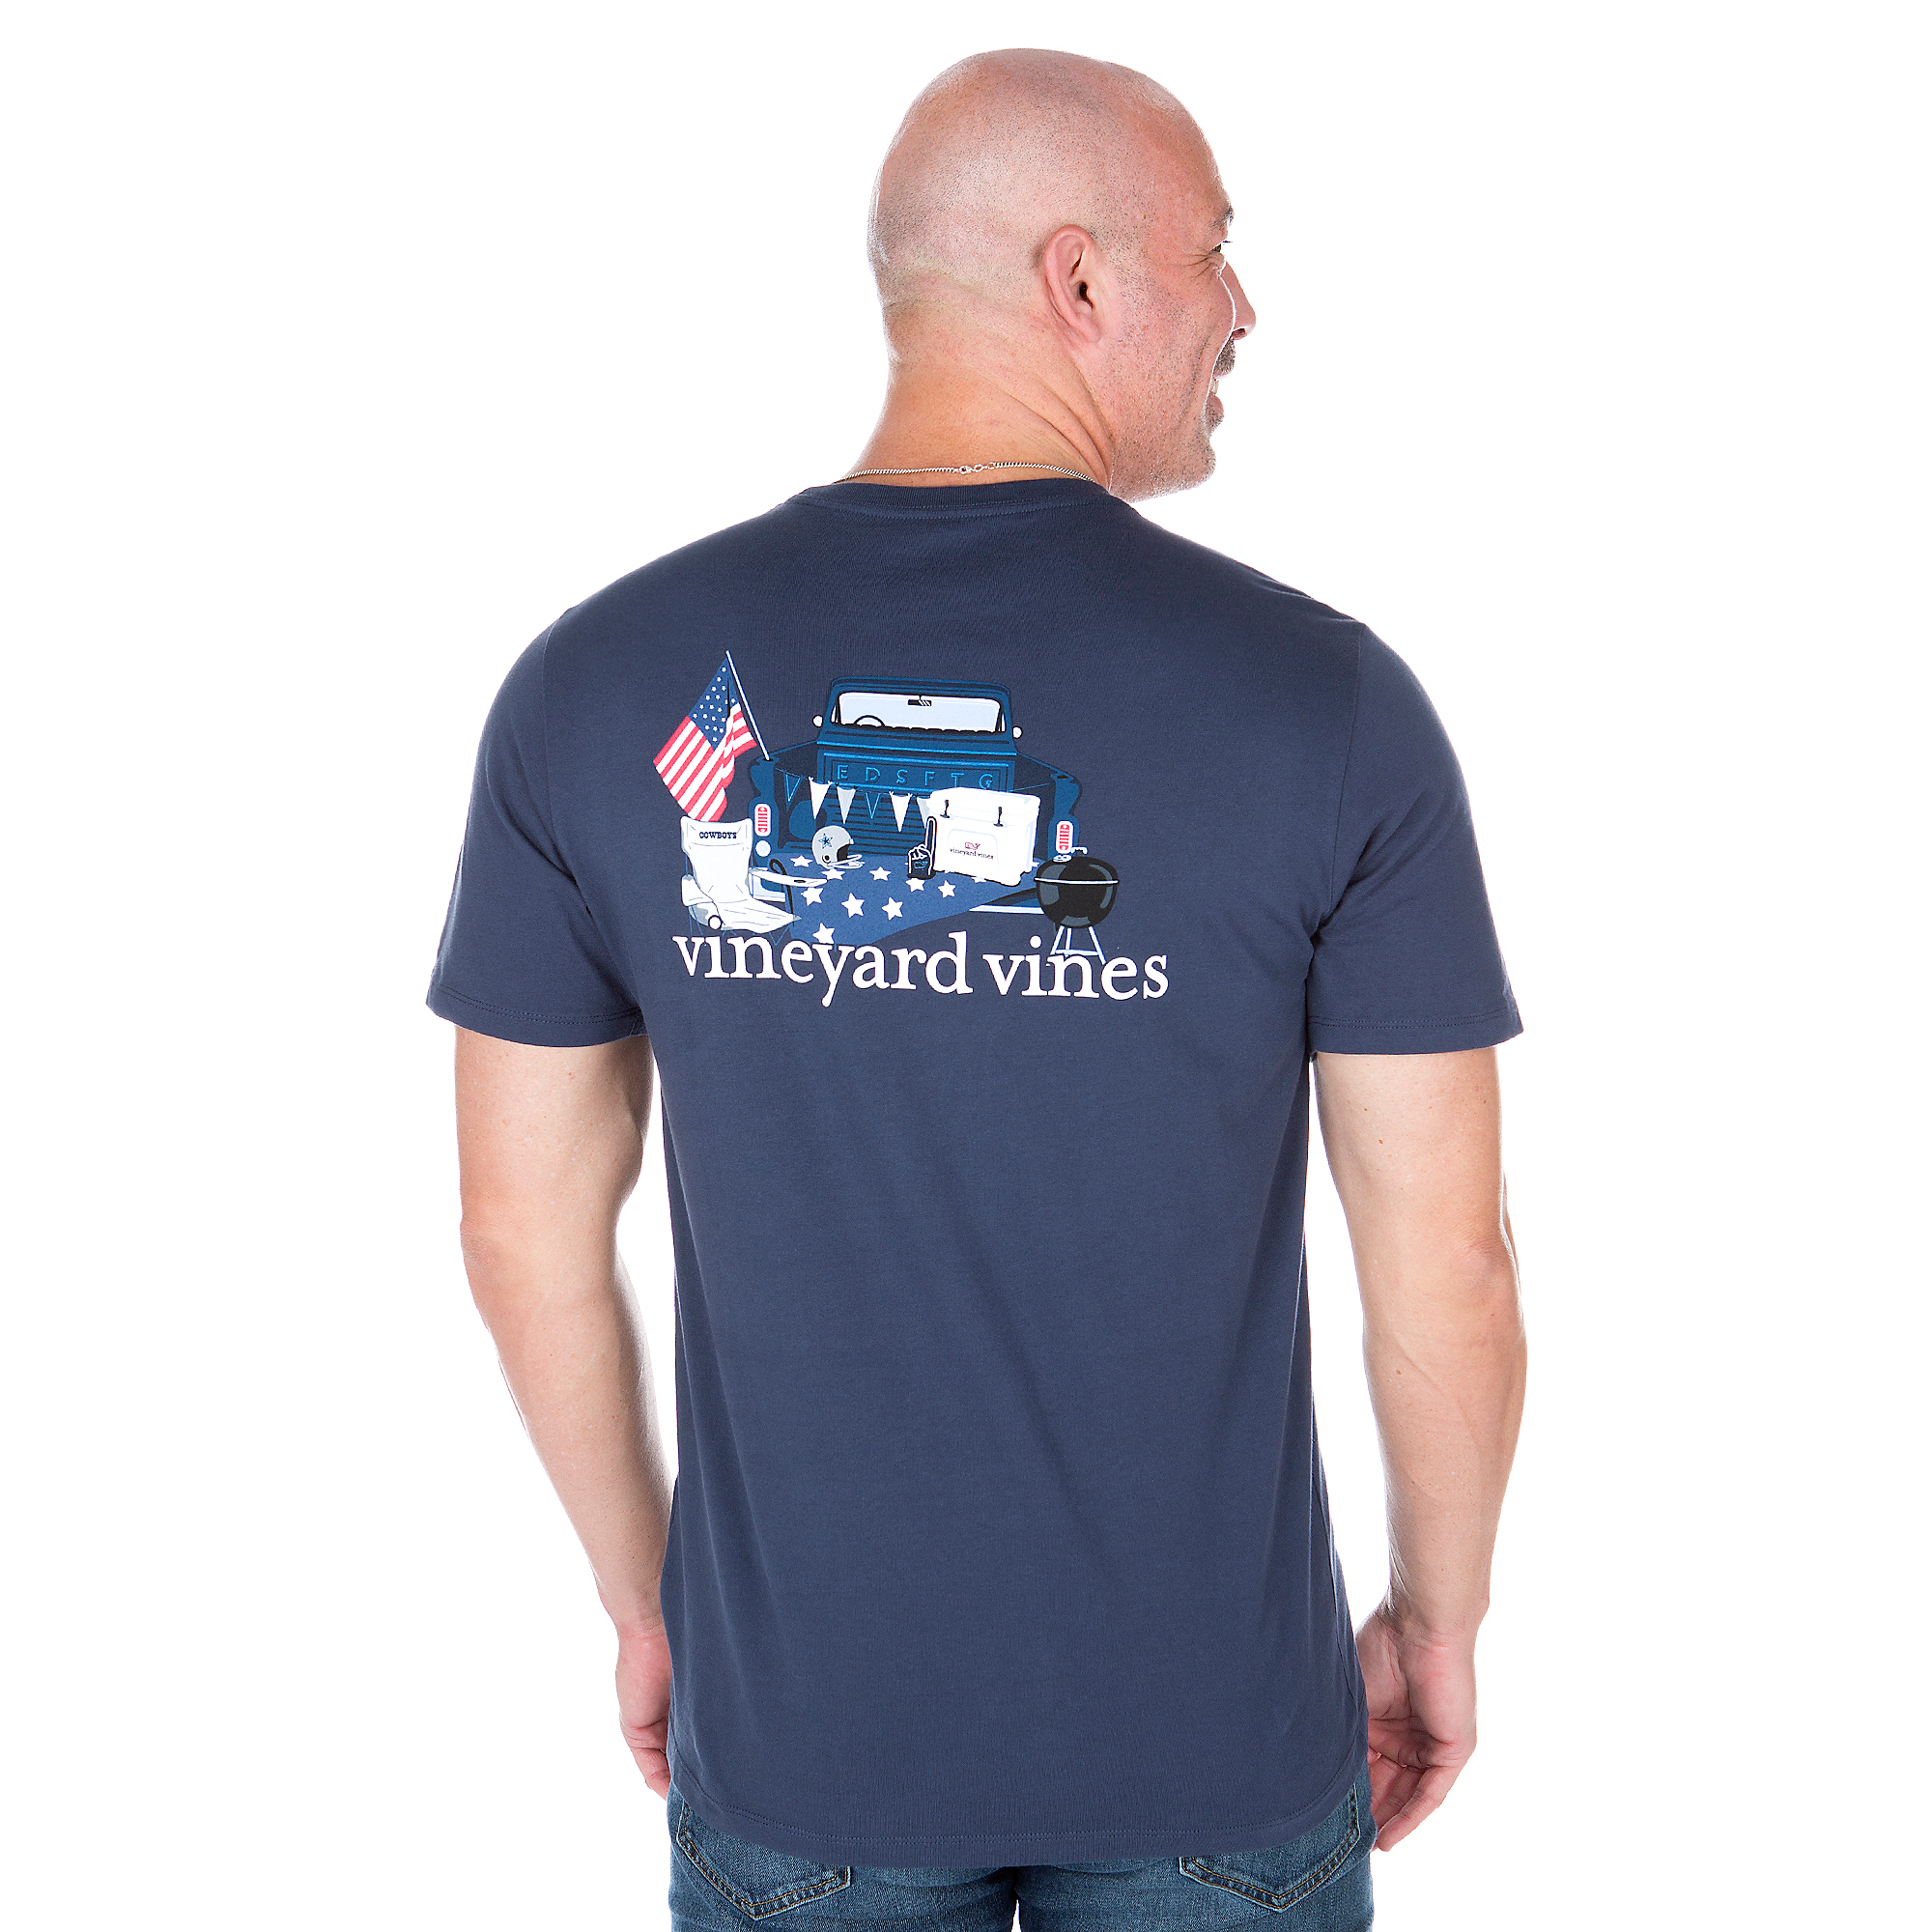 Dallas Cowboys Vineyard Vines Pickup Truck Short Sleeve Tee